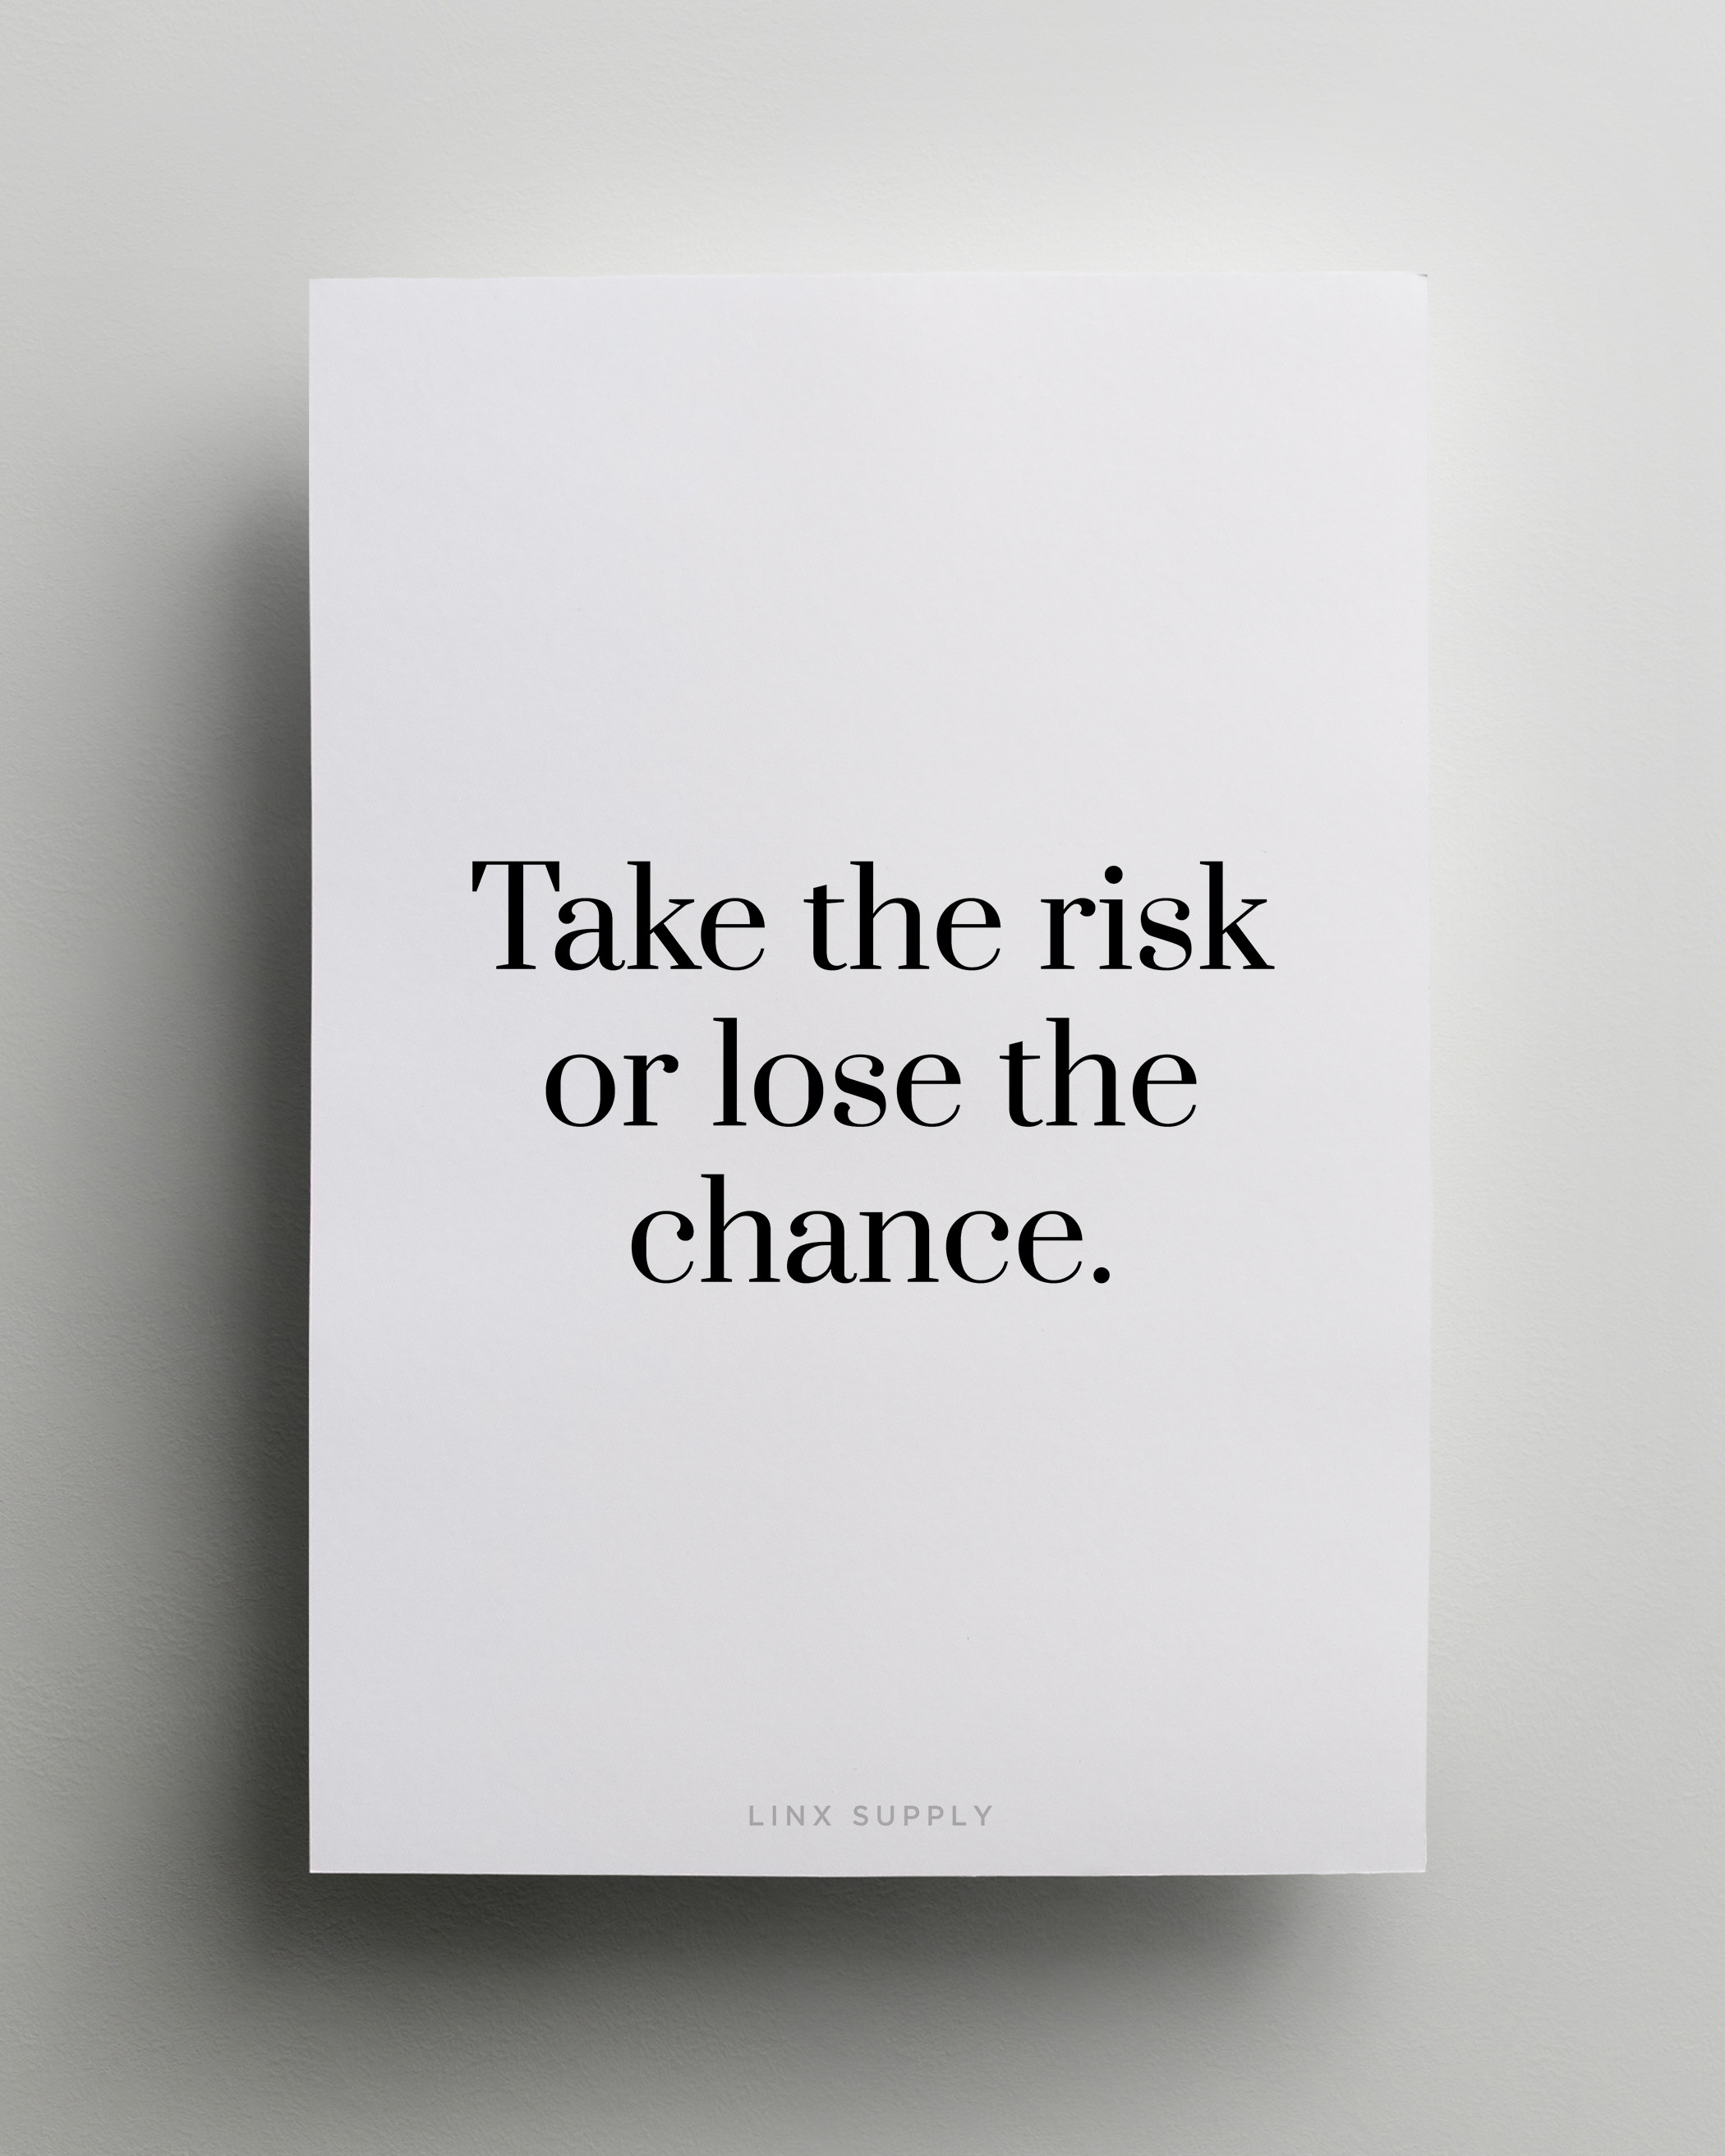 Liebessprüche Kurz Englisch Tumblr Take The Risk - Linx Supply